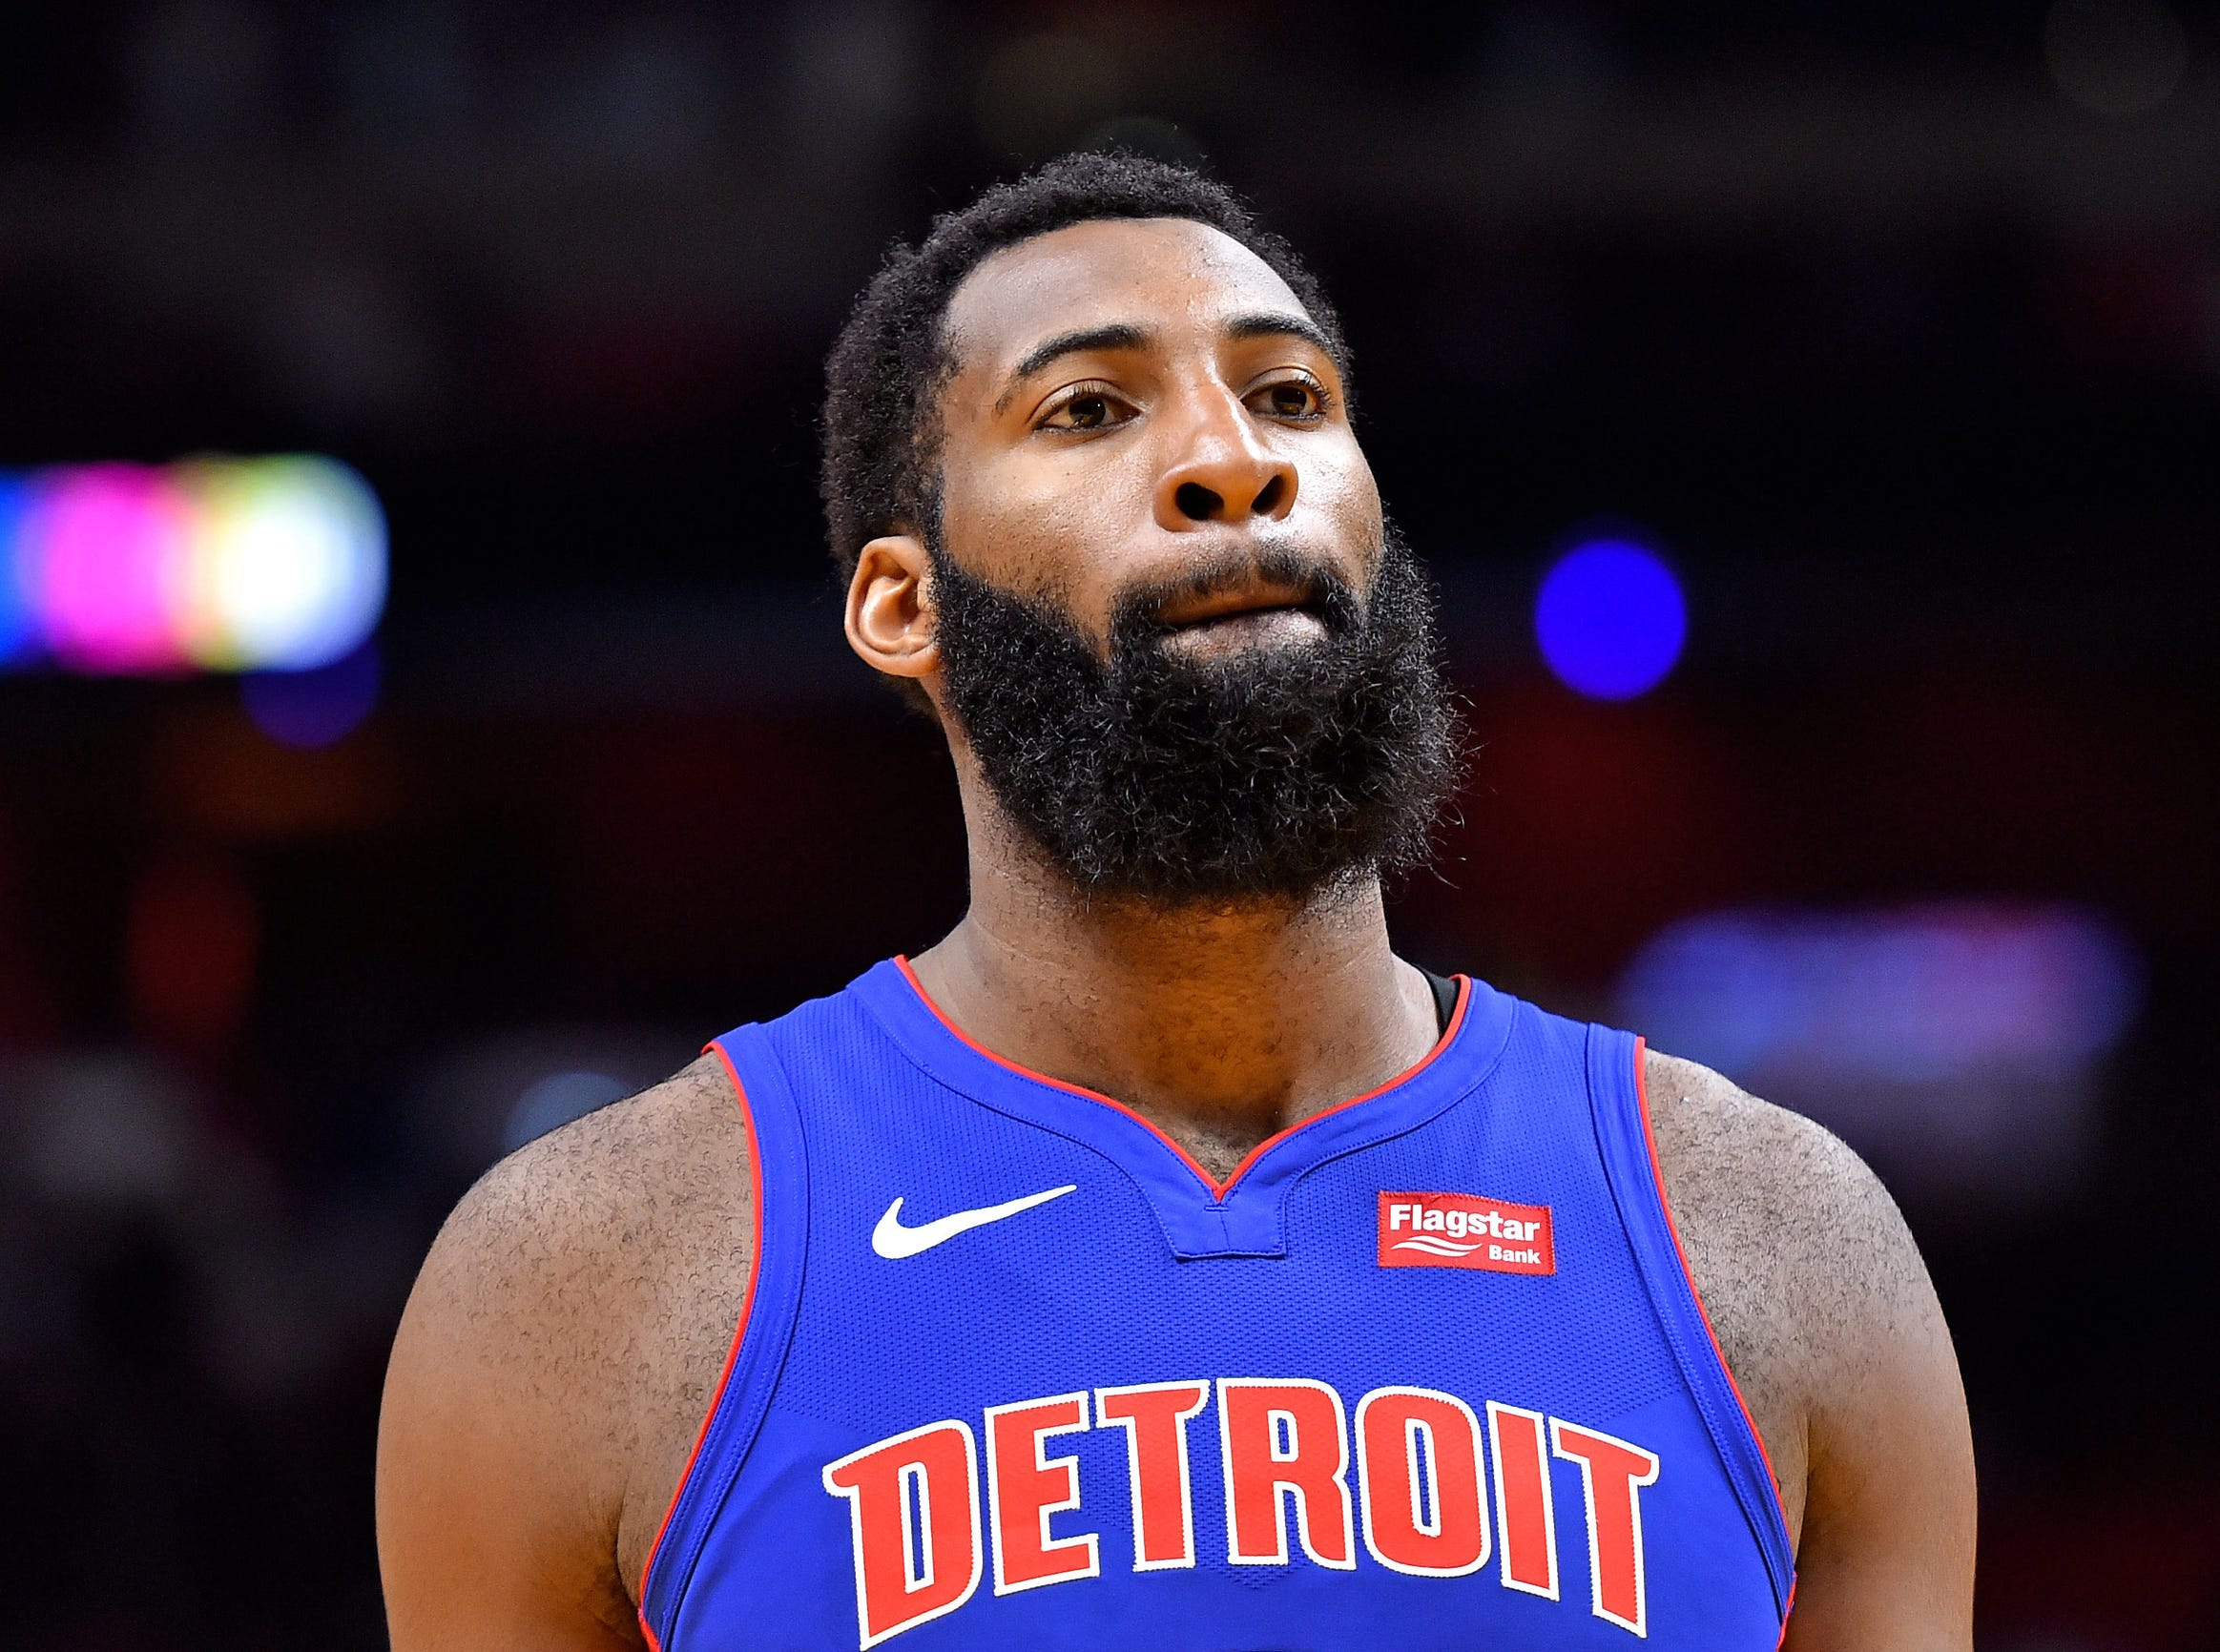 Detroit Pistons center Andre Drummond (0) takes a breather against the Miami Heat during the second half at American Airlines Arena on Wednesday, March 13, 2019.